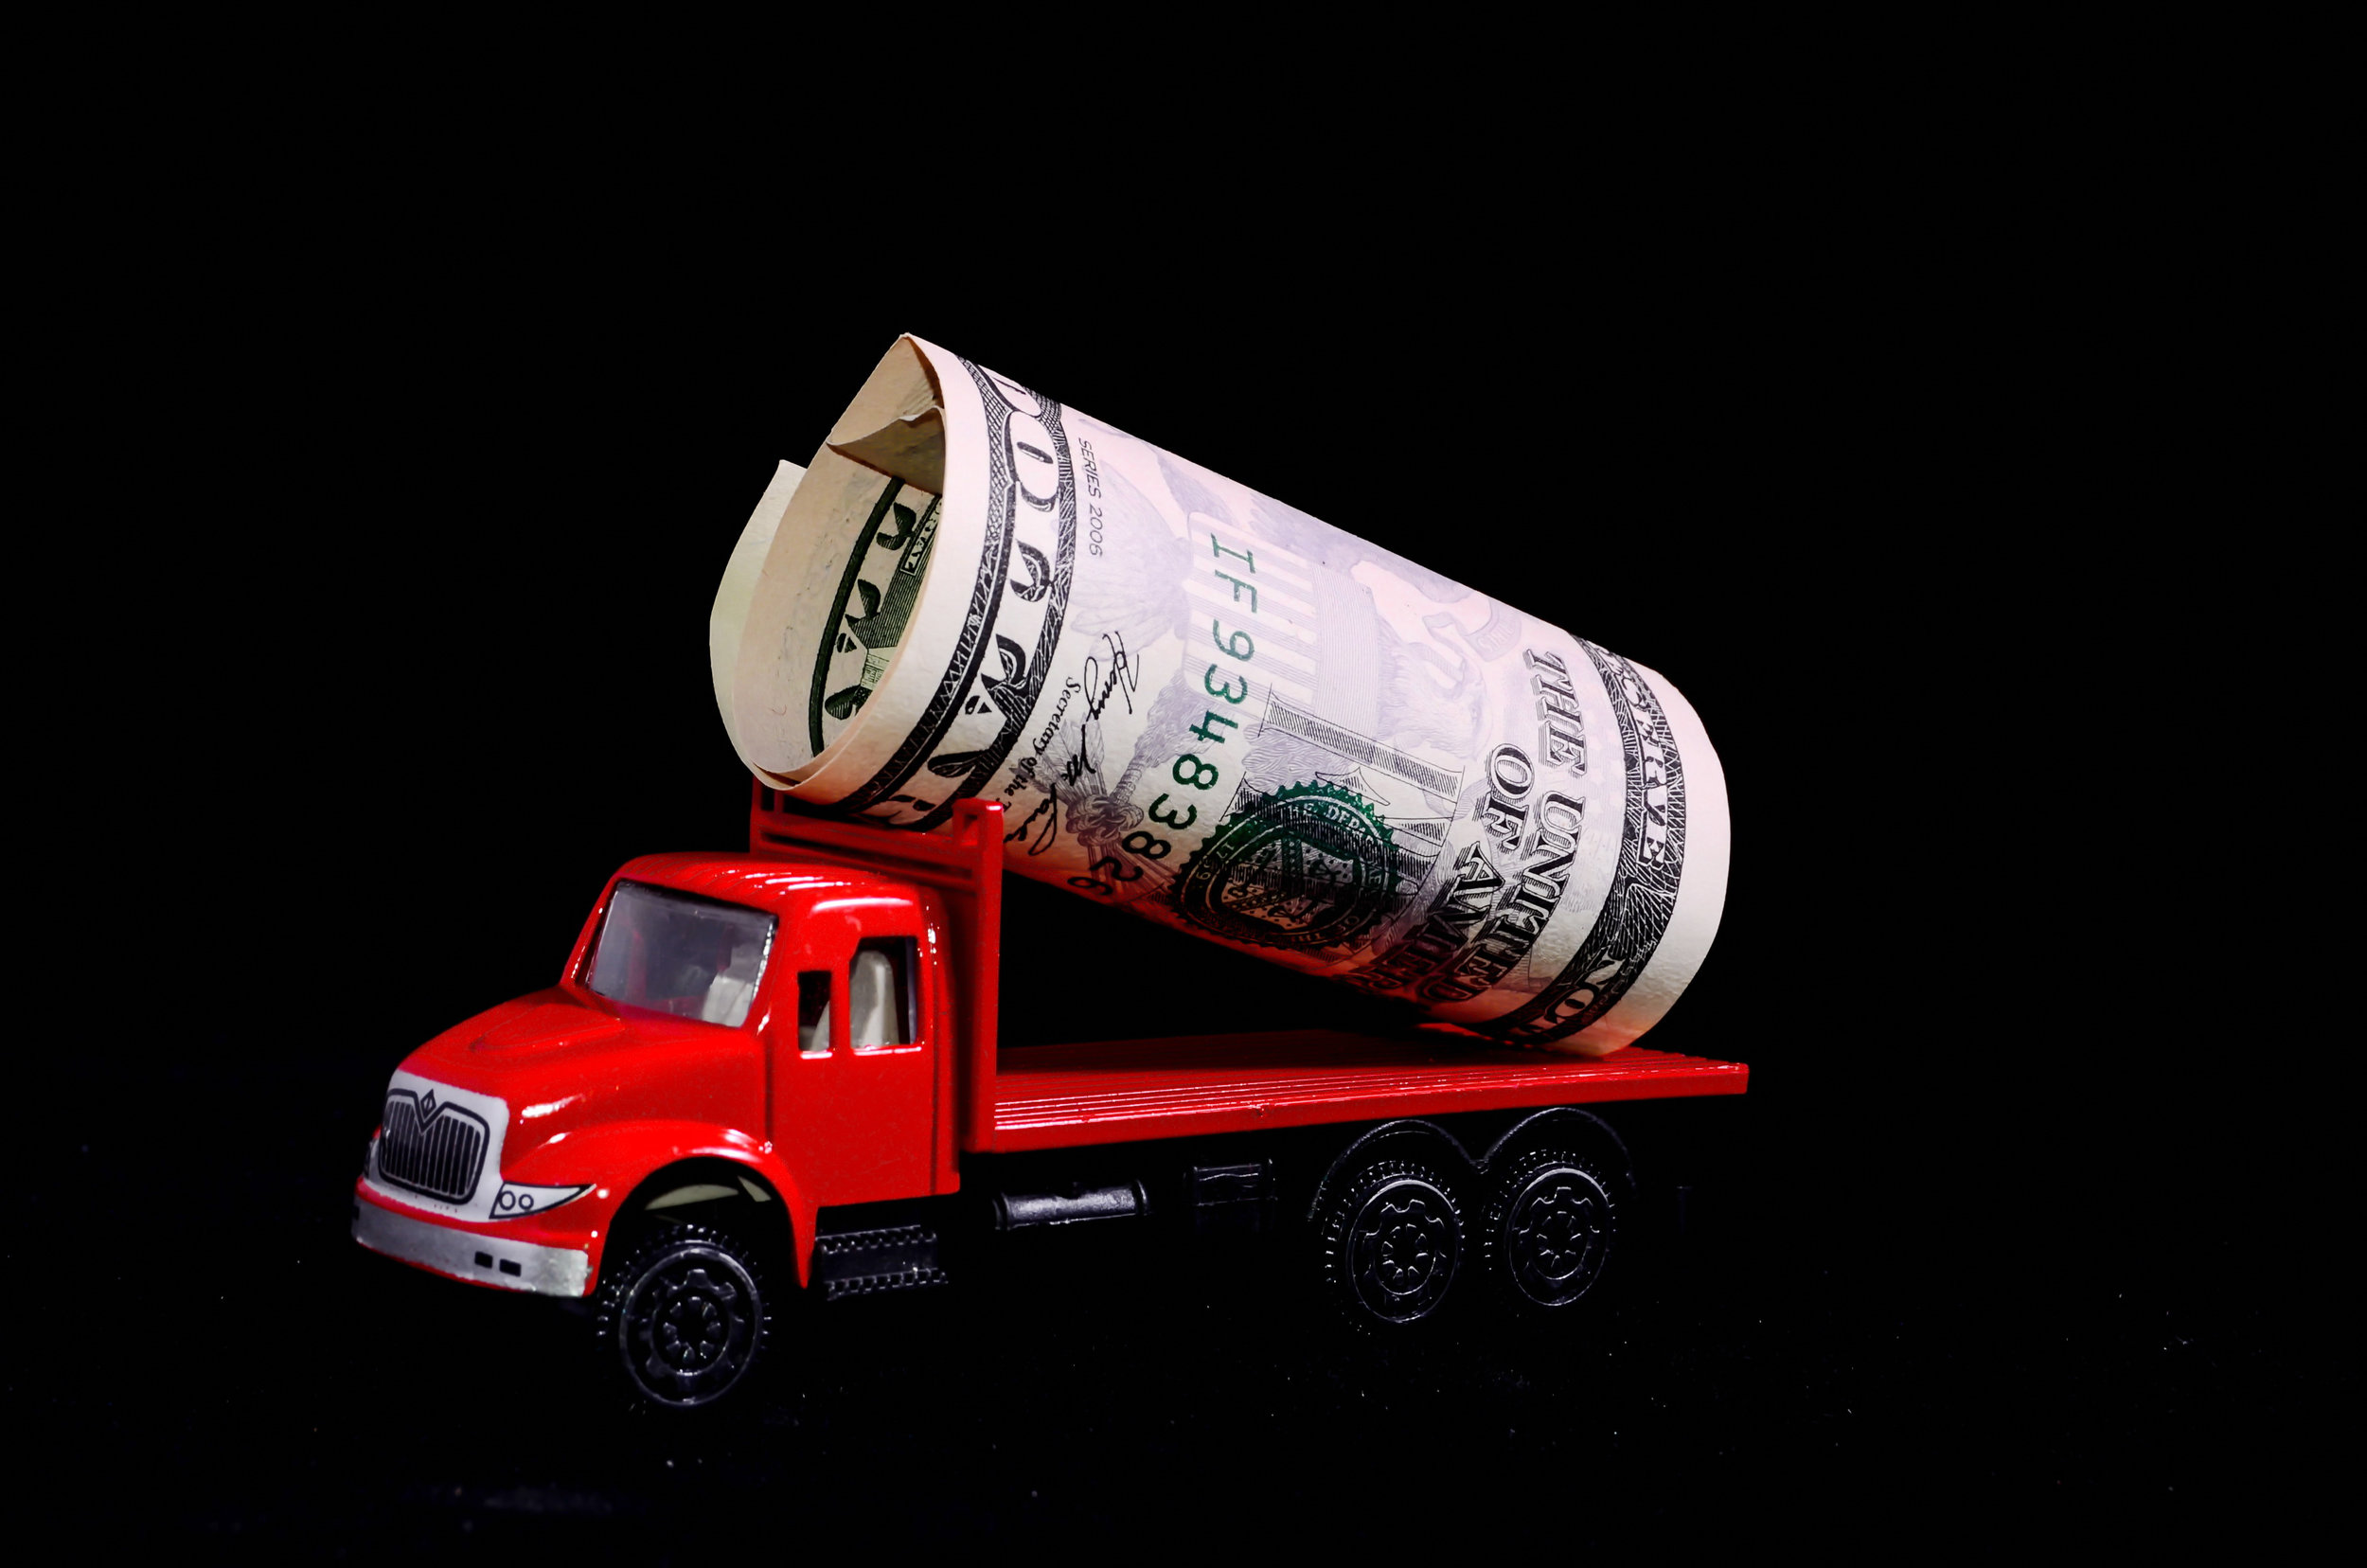 Commercial truckers aren't getting paid as much as they should... especially considering the high demand. The ELD law and the 14 Hour Rule are causing truckers to leave the industry in search of better careers.